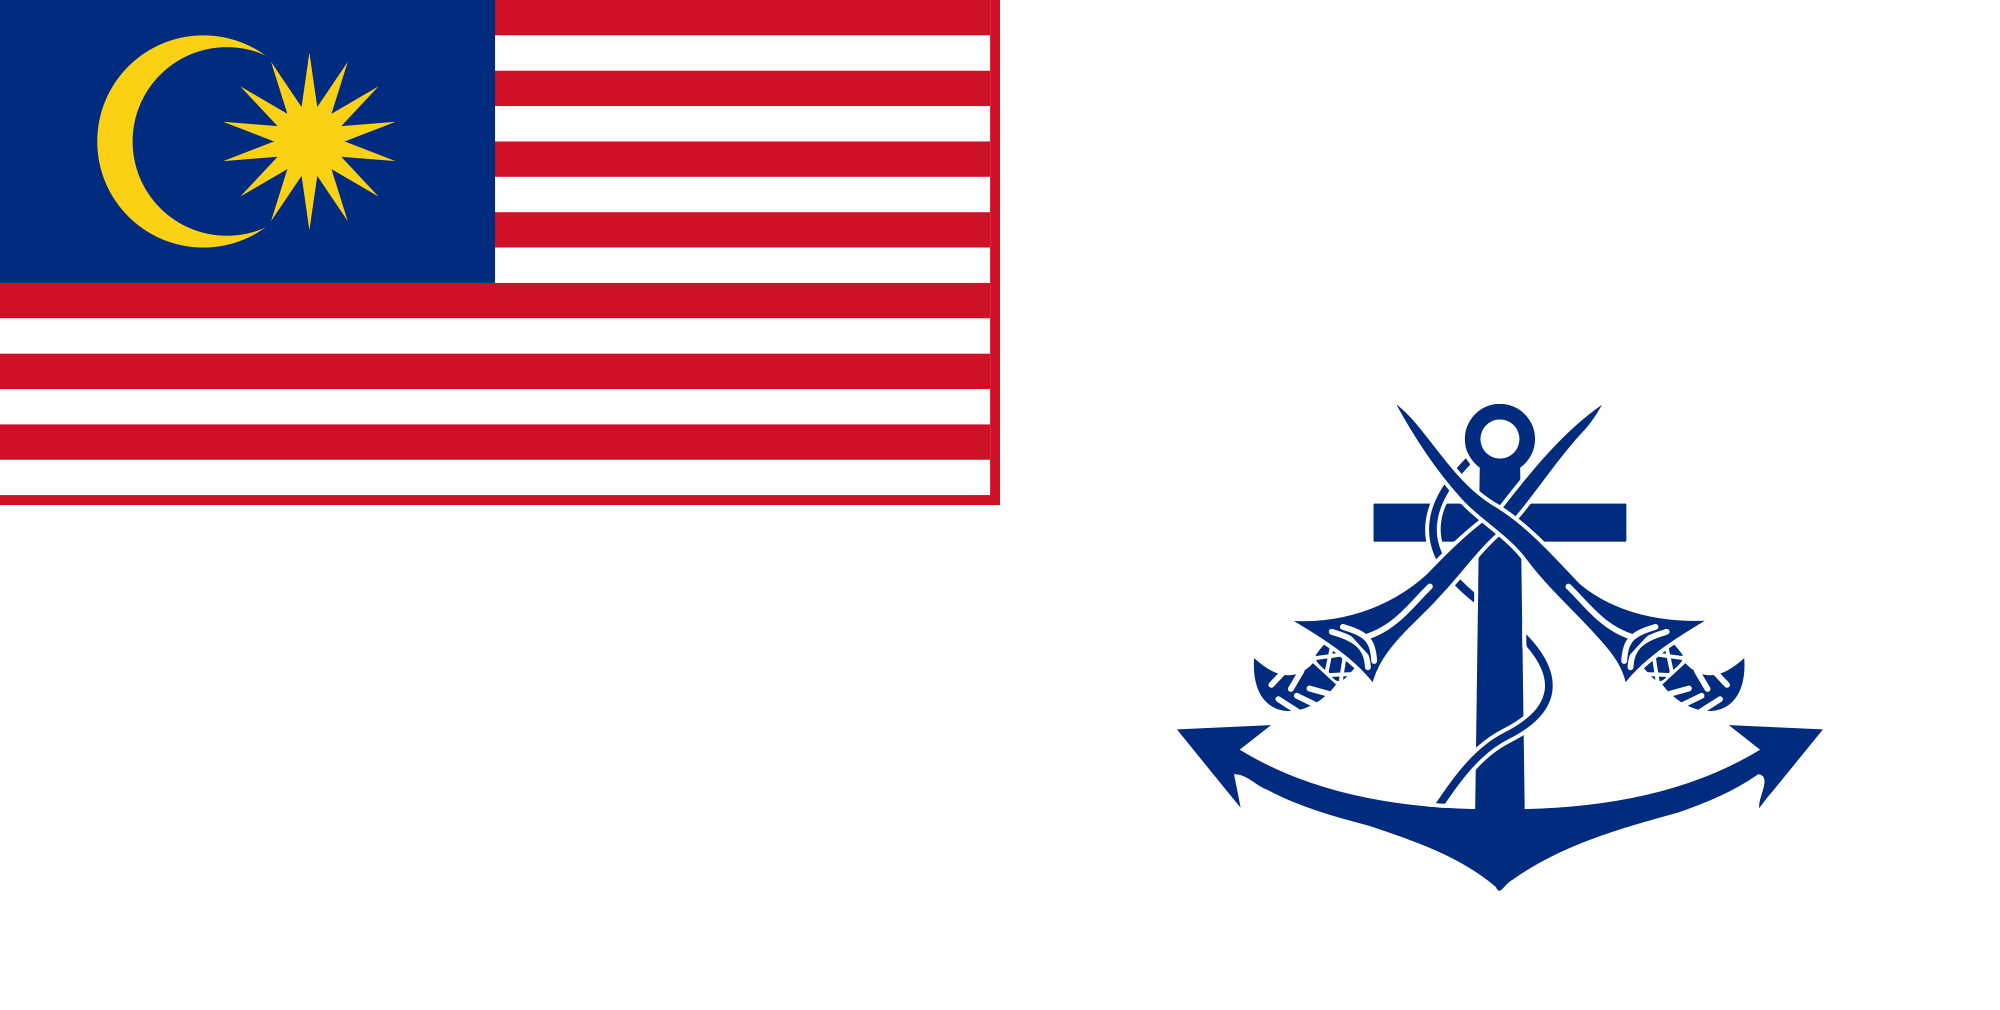 Malaysia (Naval ensign)